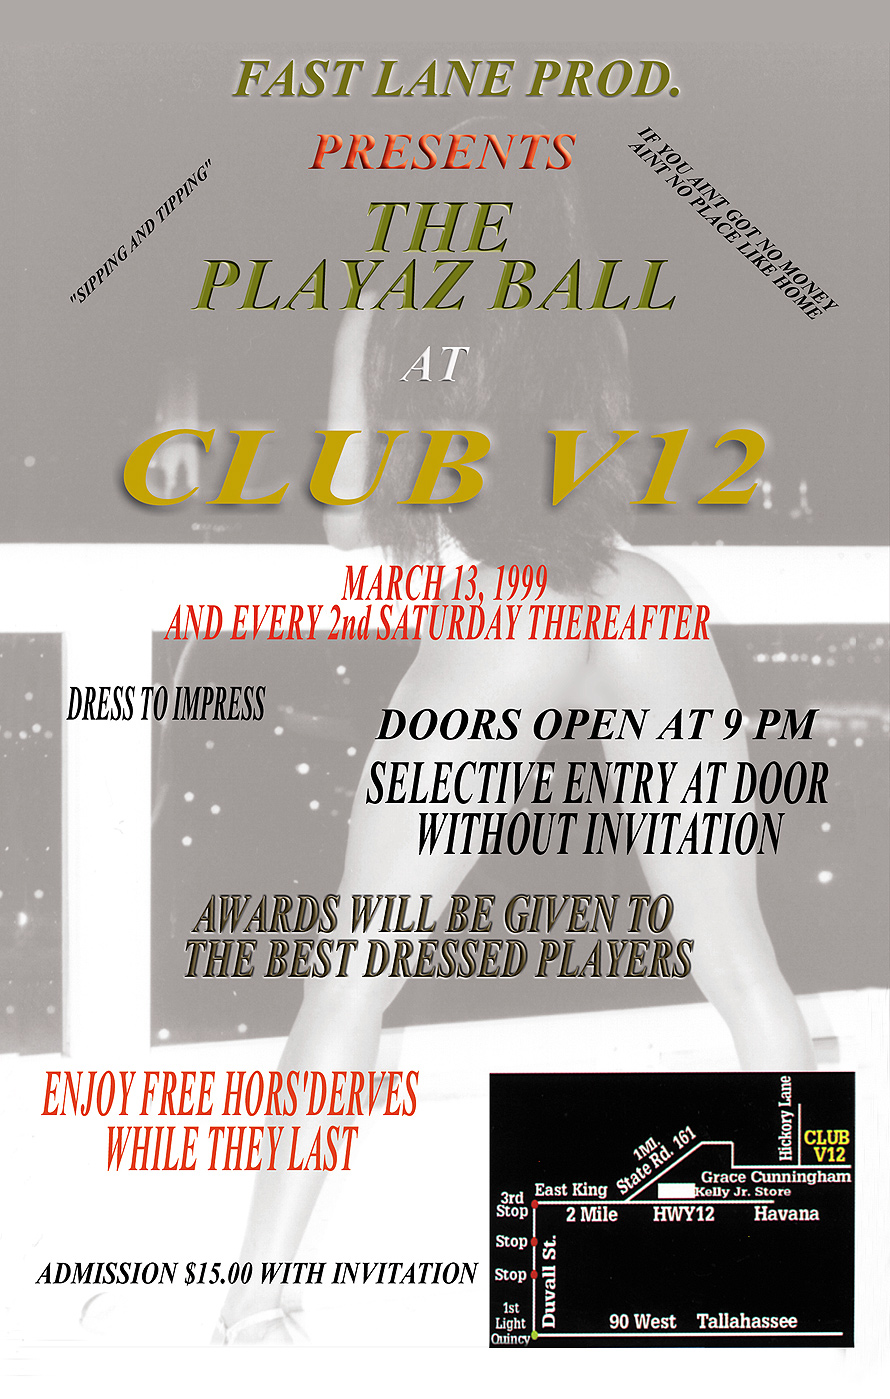 The Players Ball at Club V12